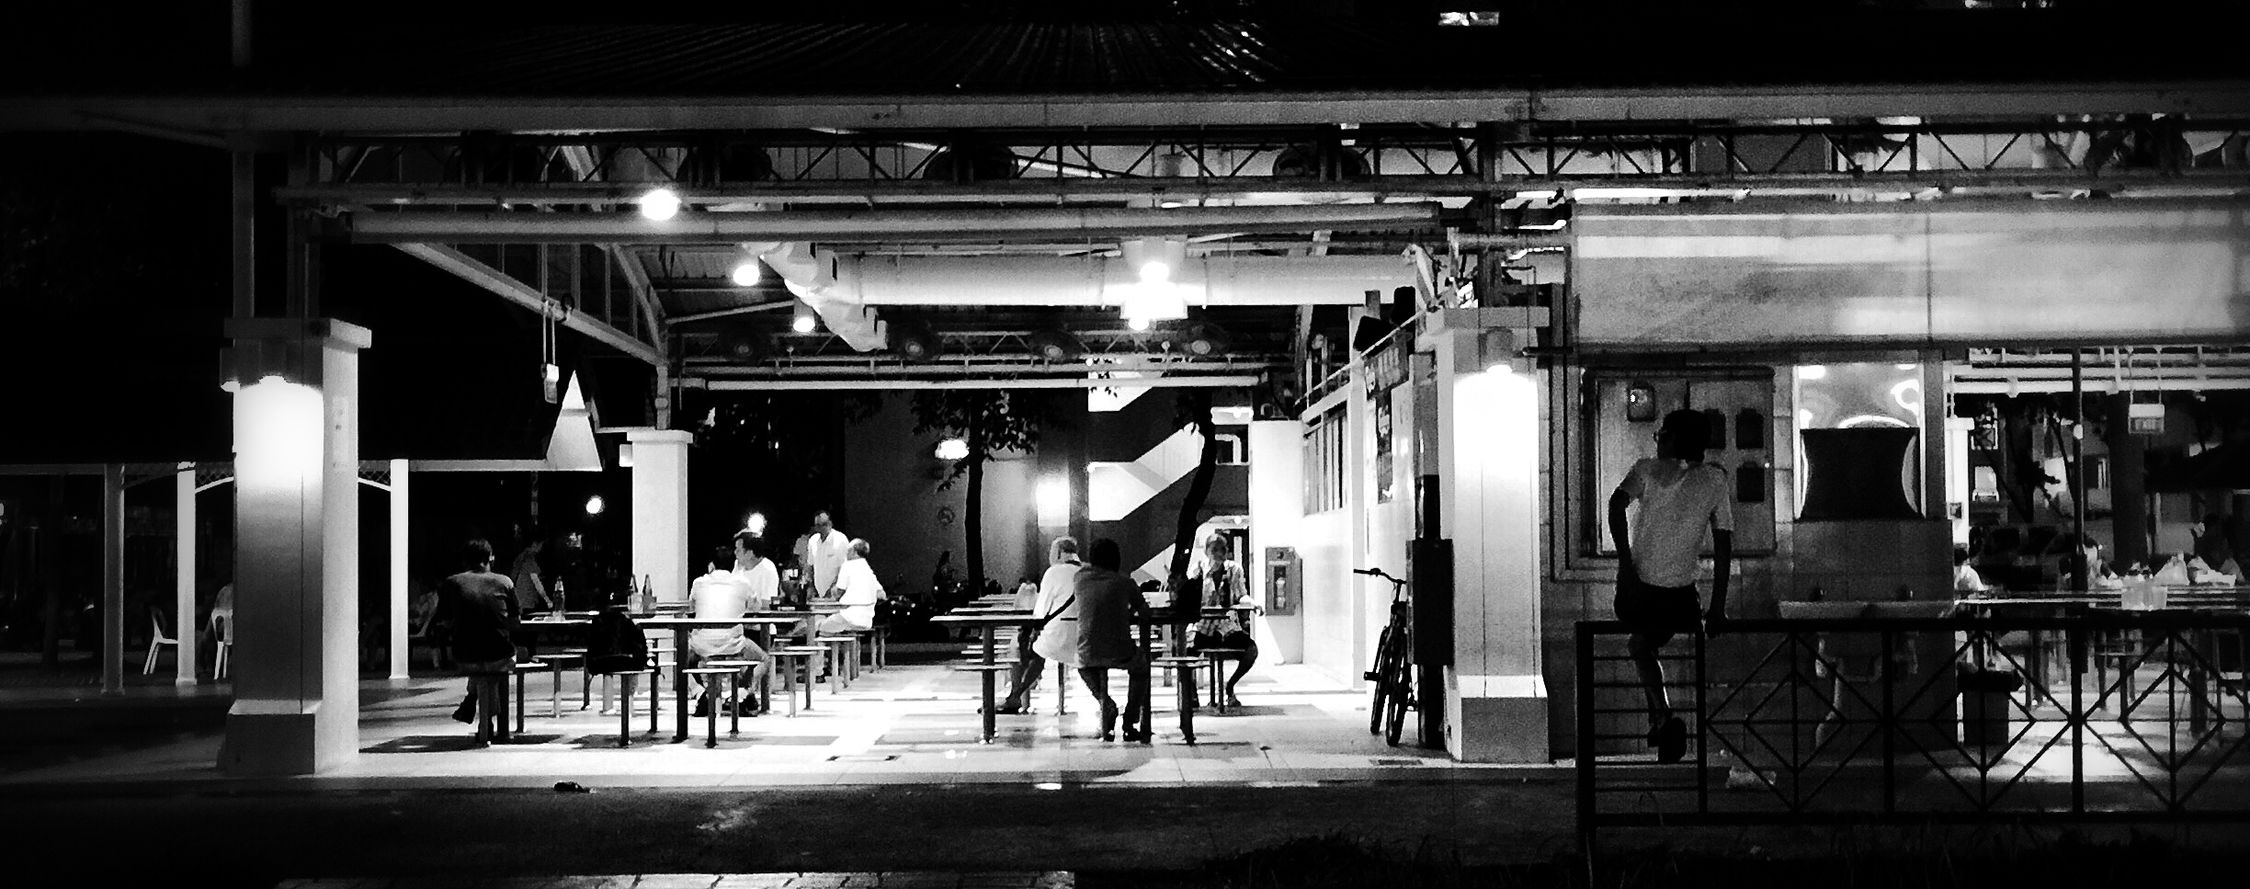 Bw_collection Blackandwhite Monochrome People People Watching Streetphotography Street Singapore Architecture Building